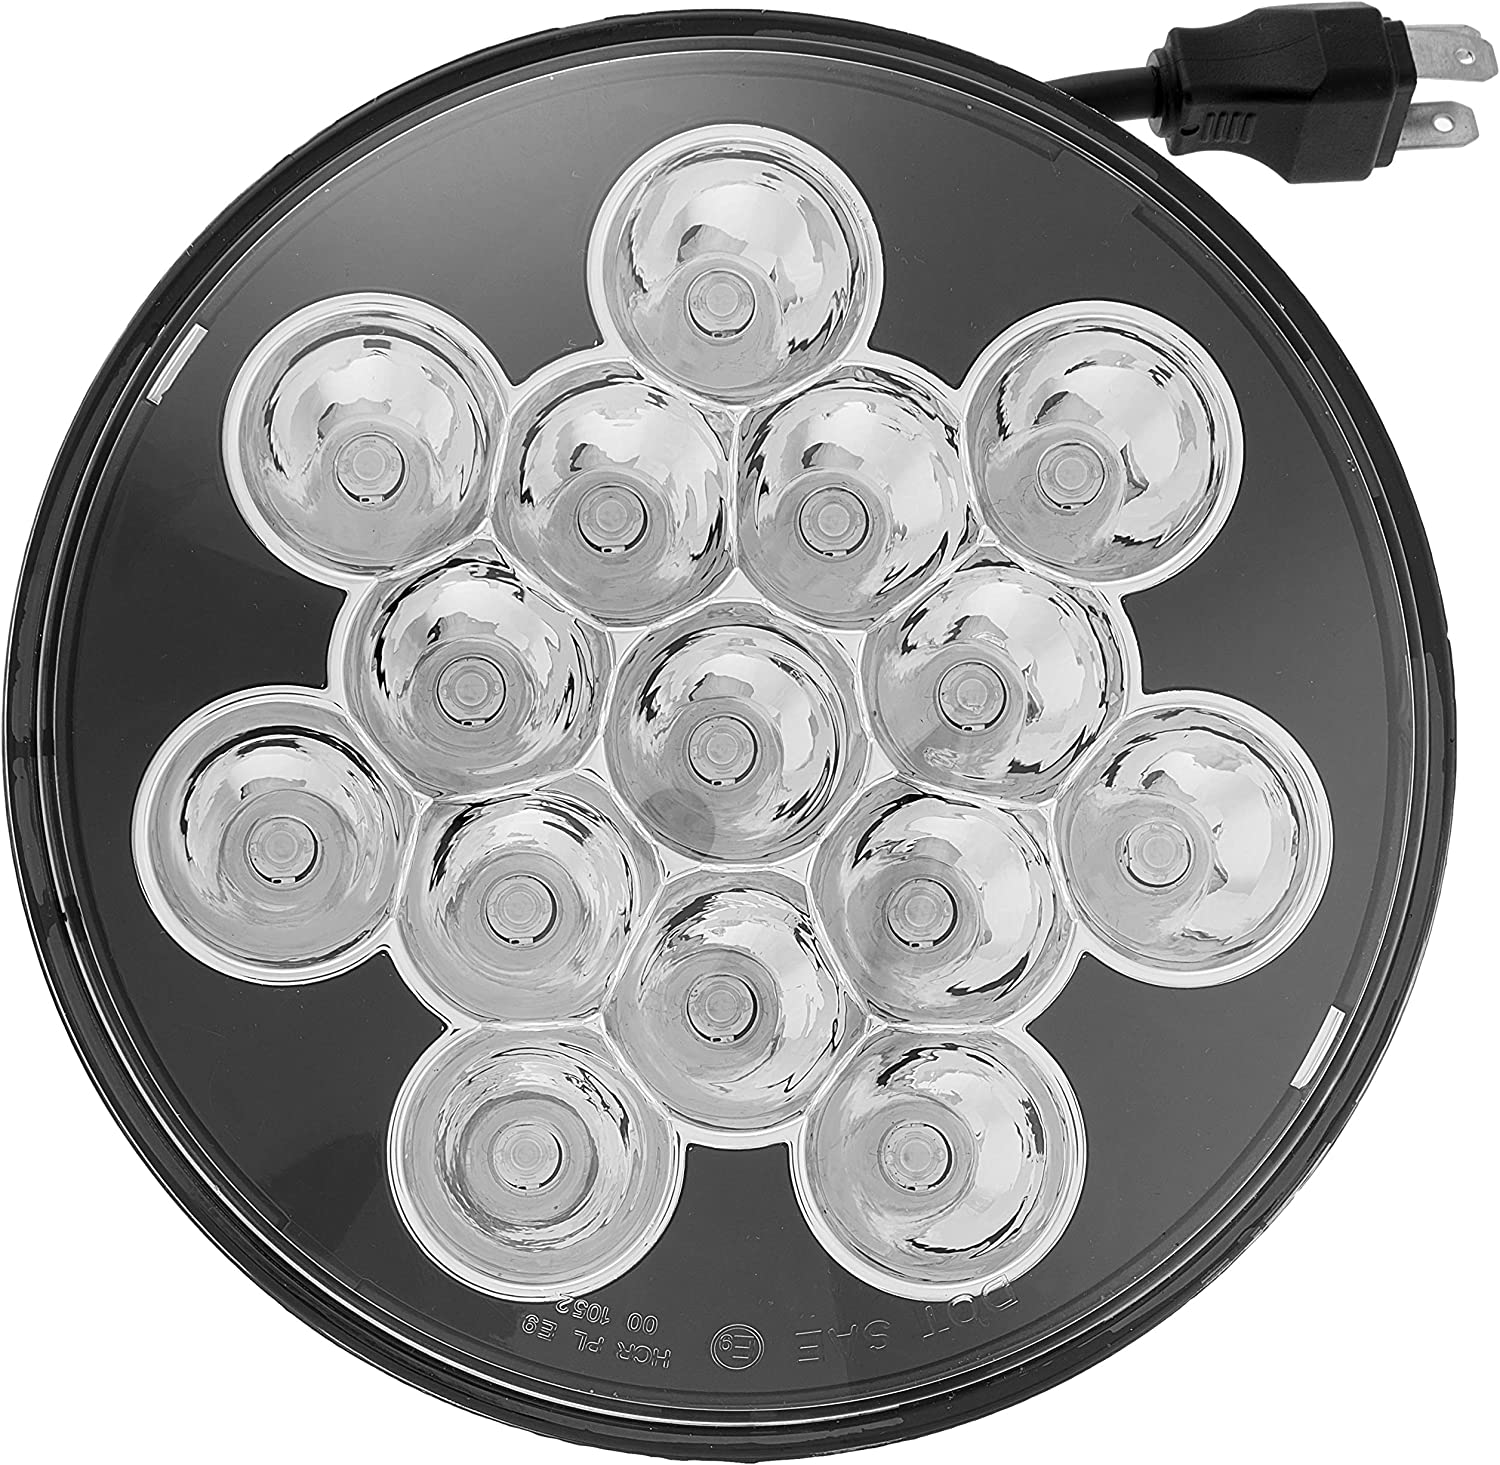 """7"""" inch LED round led headlights Fits Jeep wrangler Car and Truck 2pcs high/low beam round headlamp H6014 H6015 H6017 H6024"""